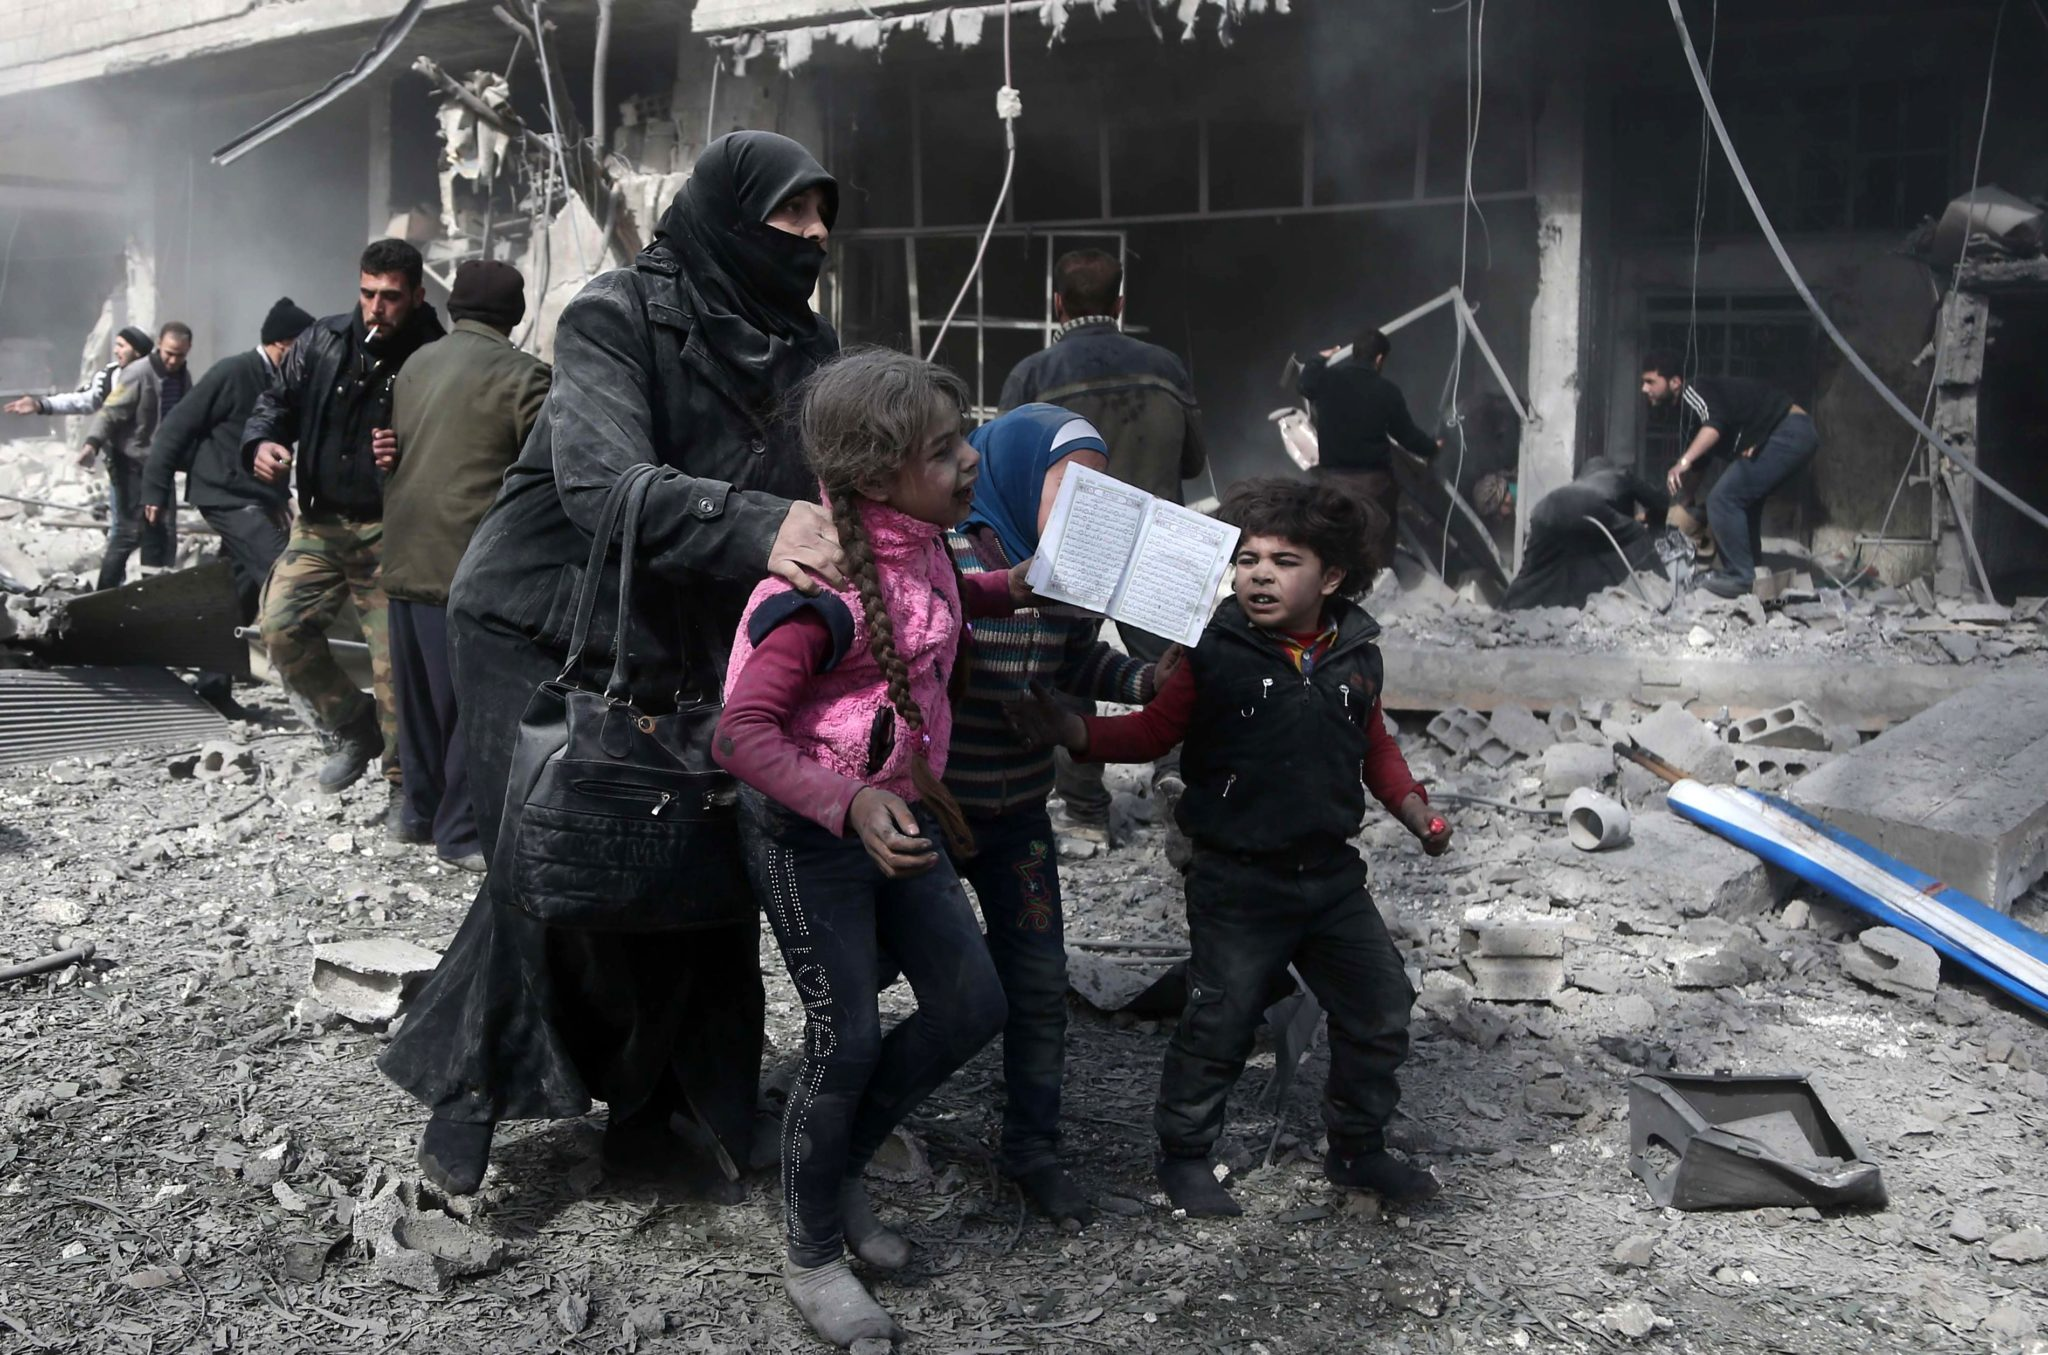 Syria's Eastern Ghouta: They fight for life. We fight for them.